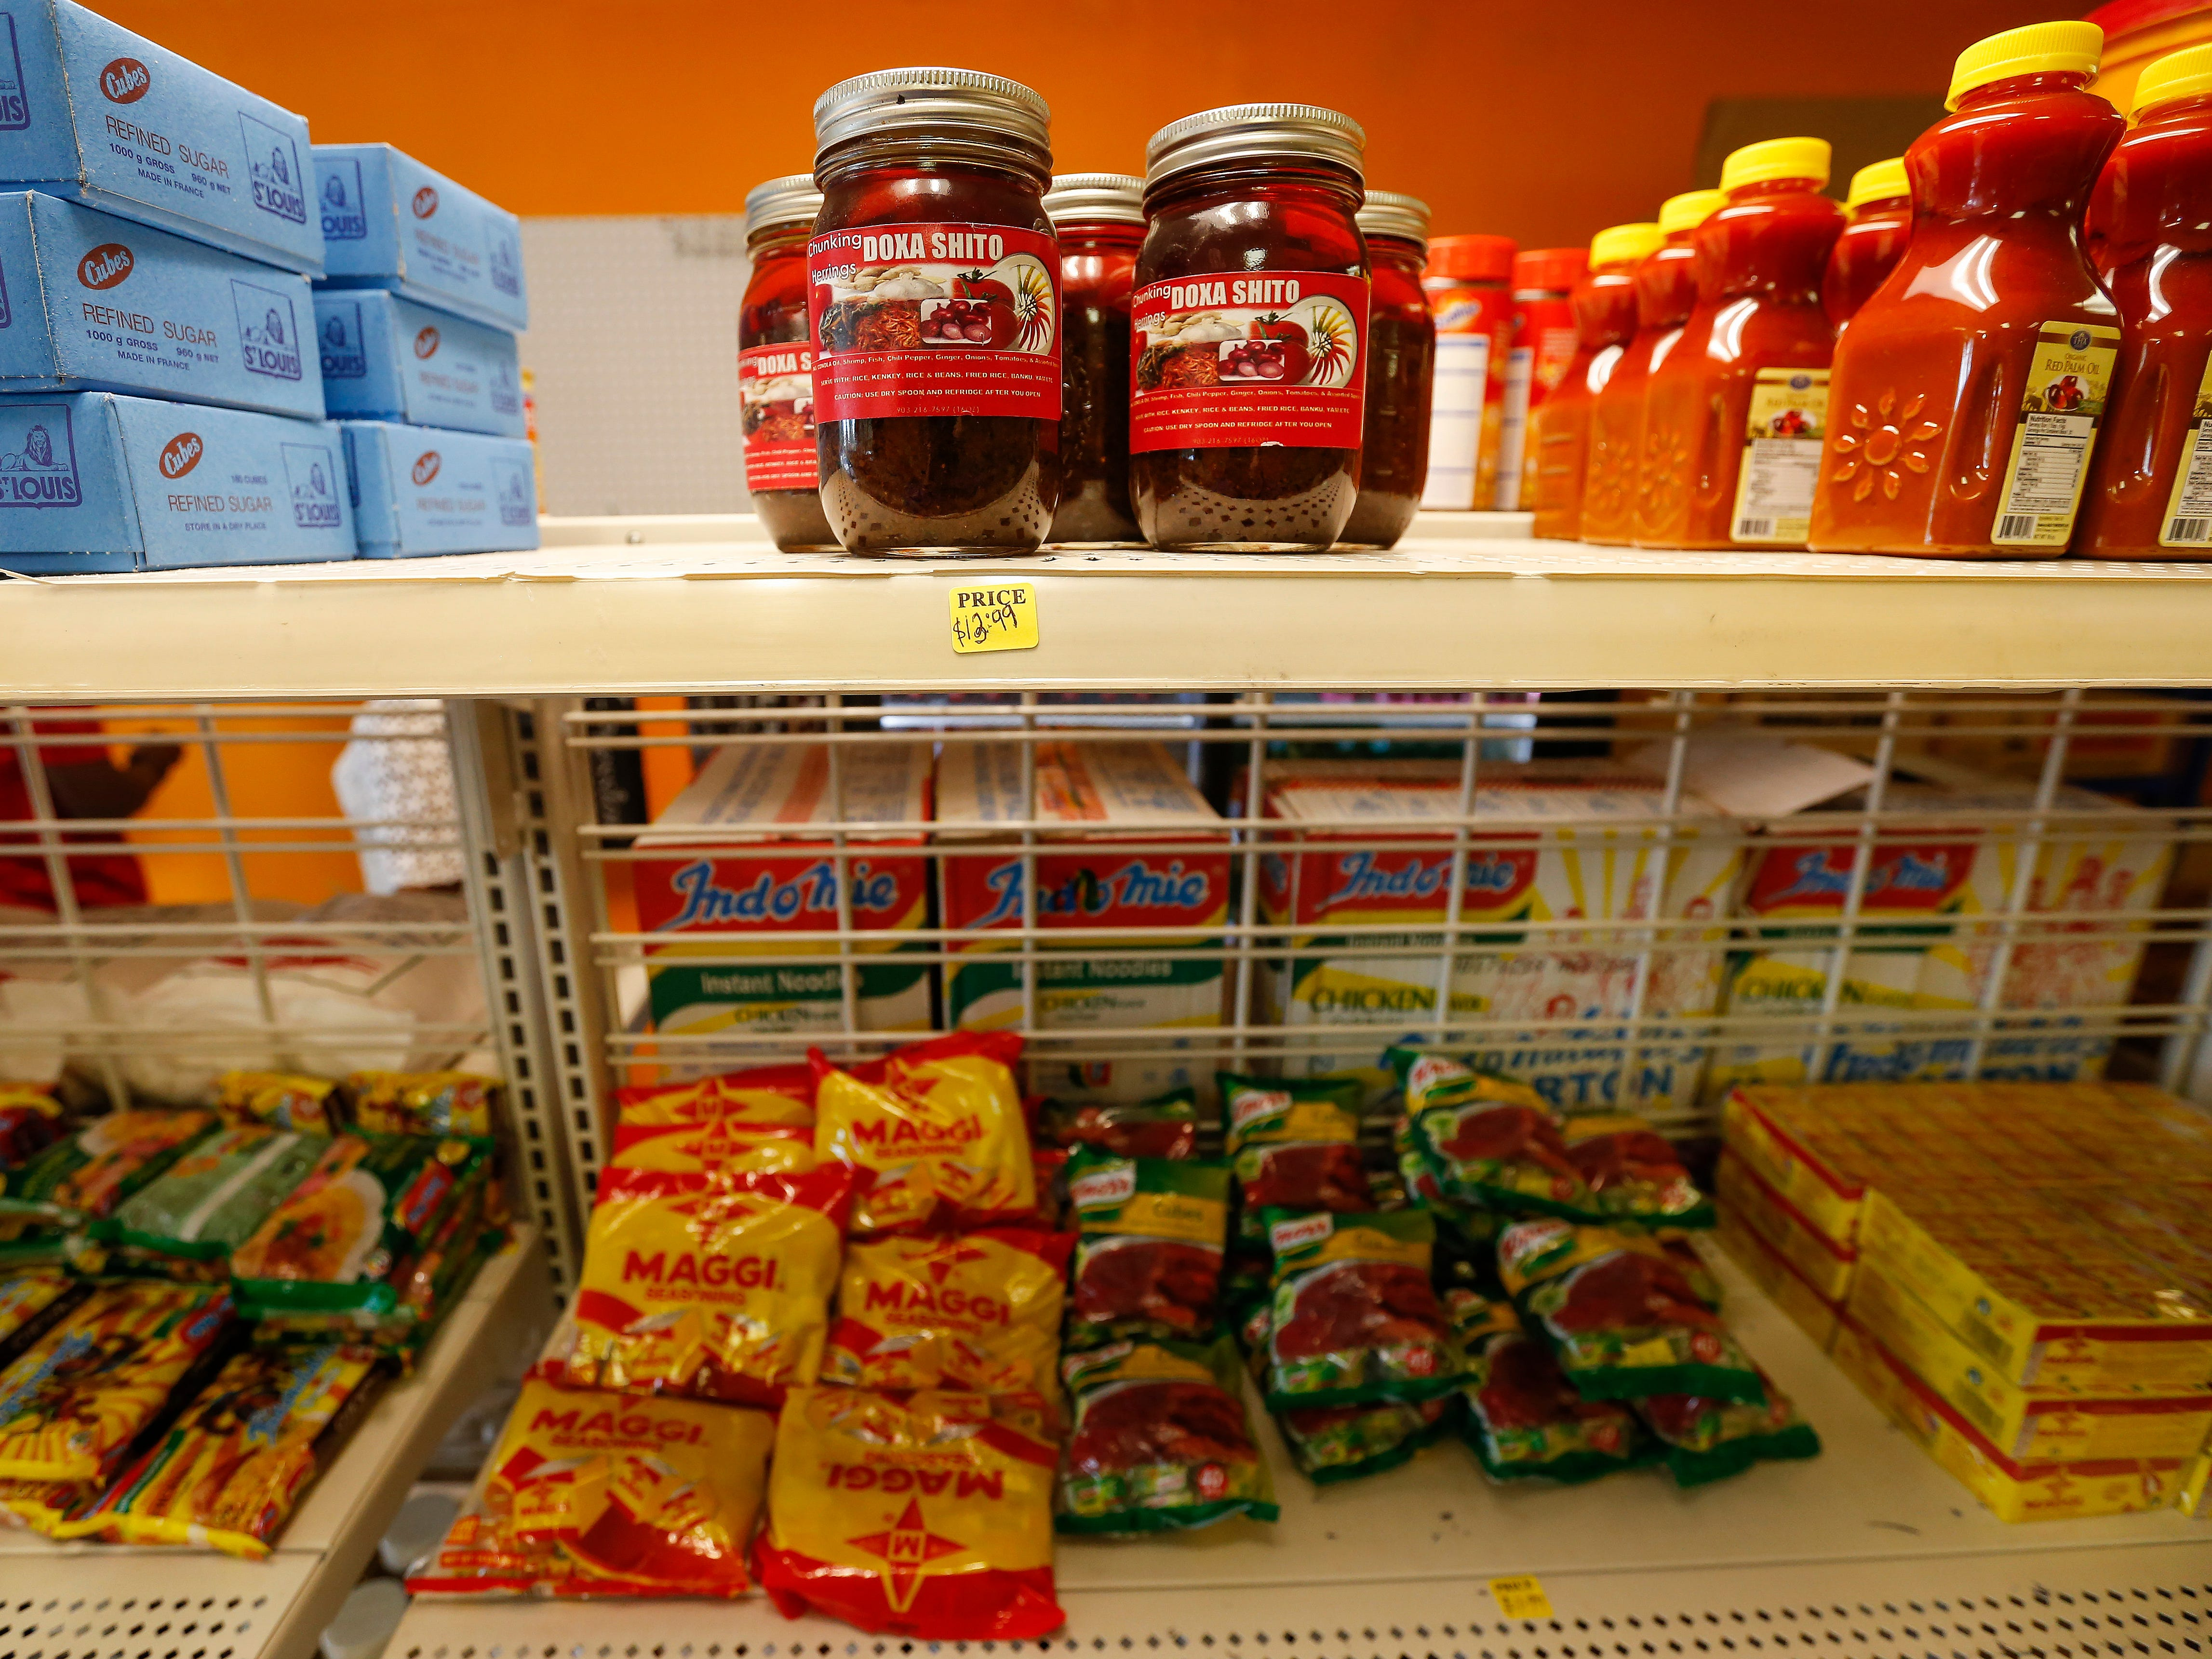 Jums African Market offers a wide variety of African food items. The market is located at 1410 E. Kearney St.